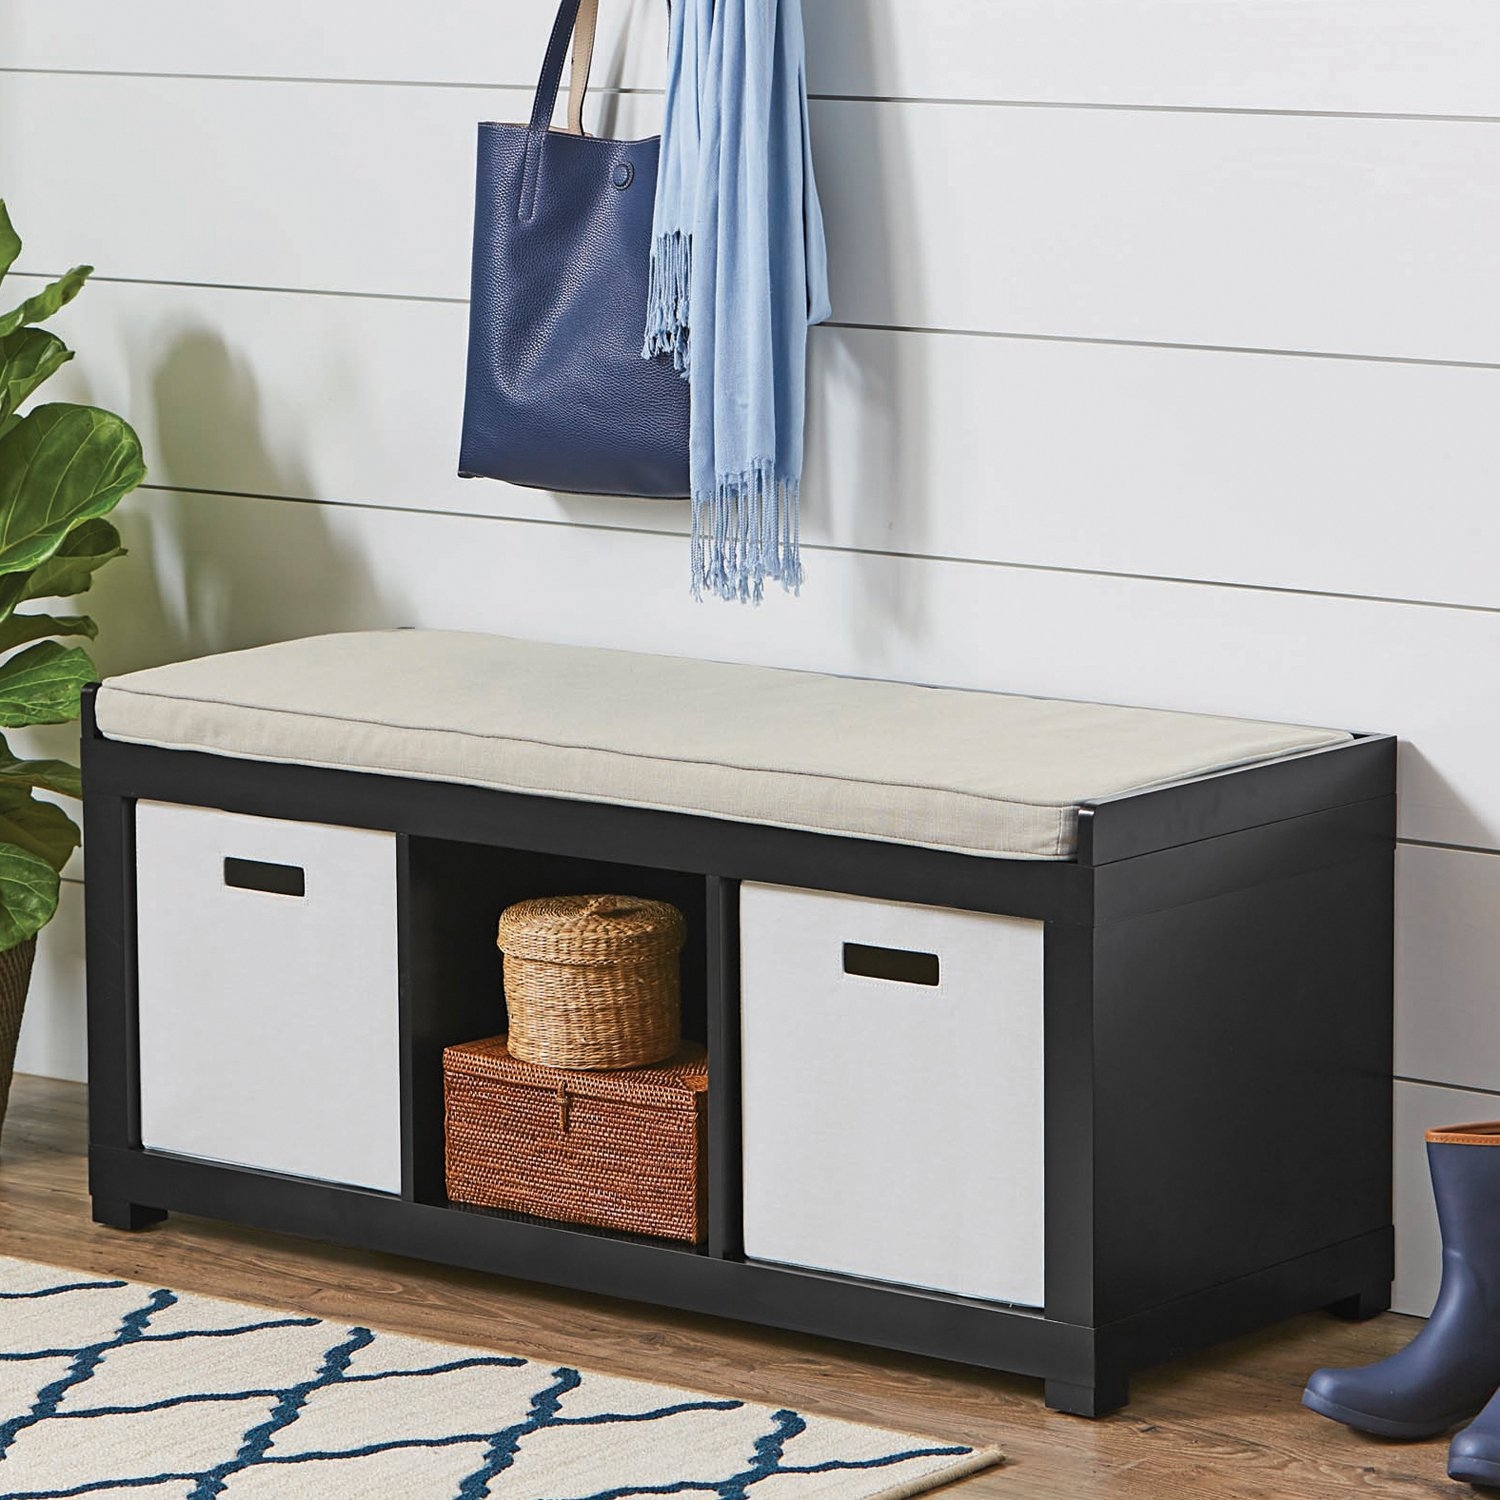 The Better Homes and Gardens 3 Cube Storage Bench (Solid Black)